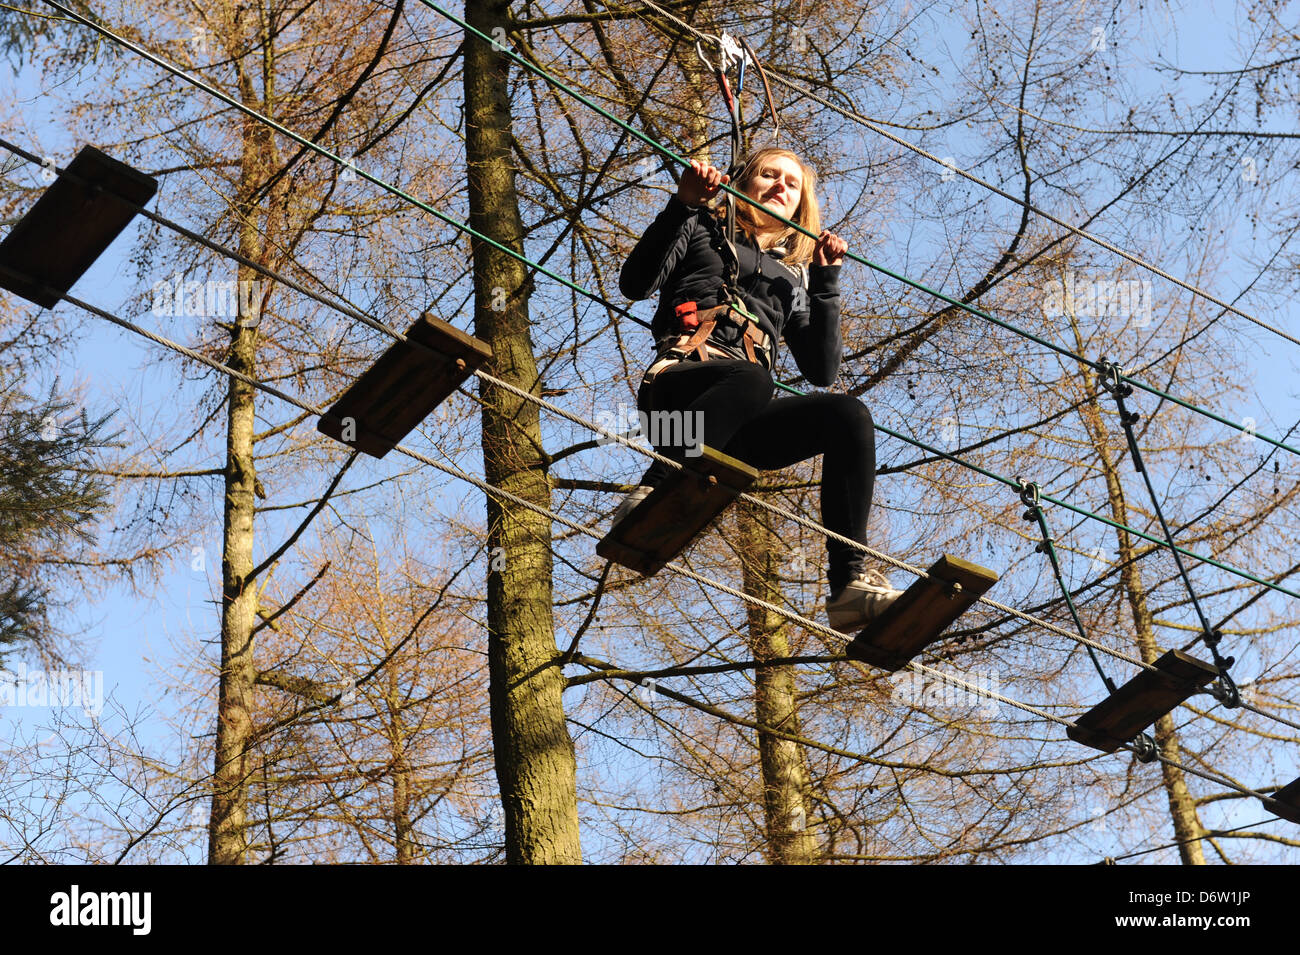 teenage girls doing the obstacle course at Dalby Forest, north yorkshire, uk - Stock Image